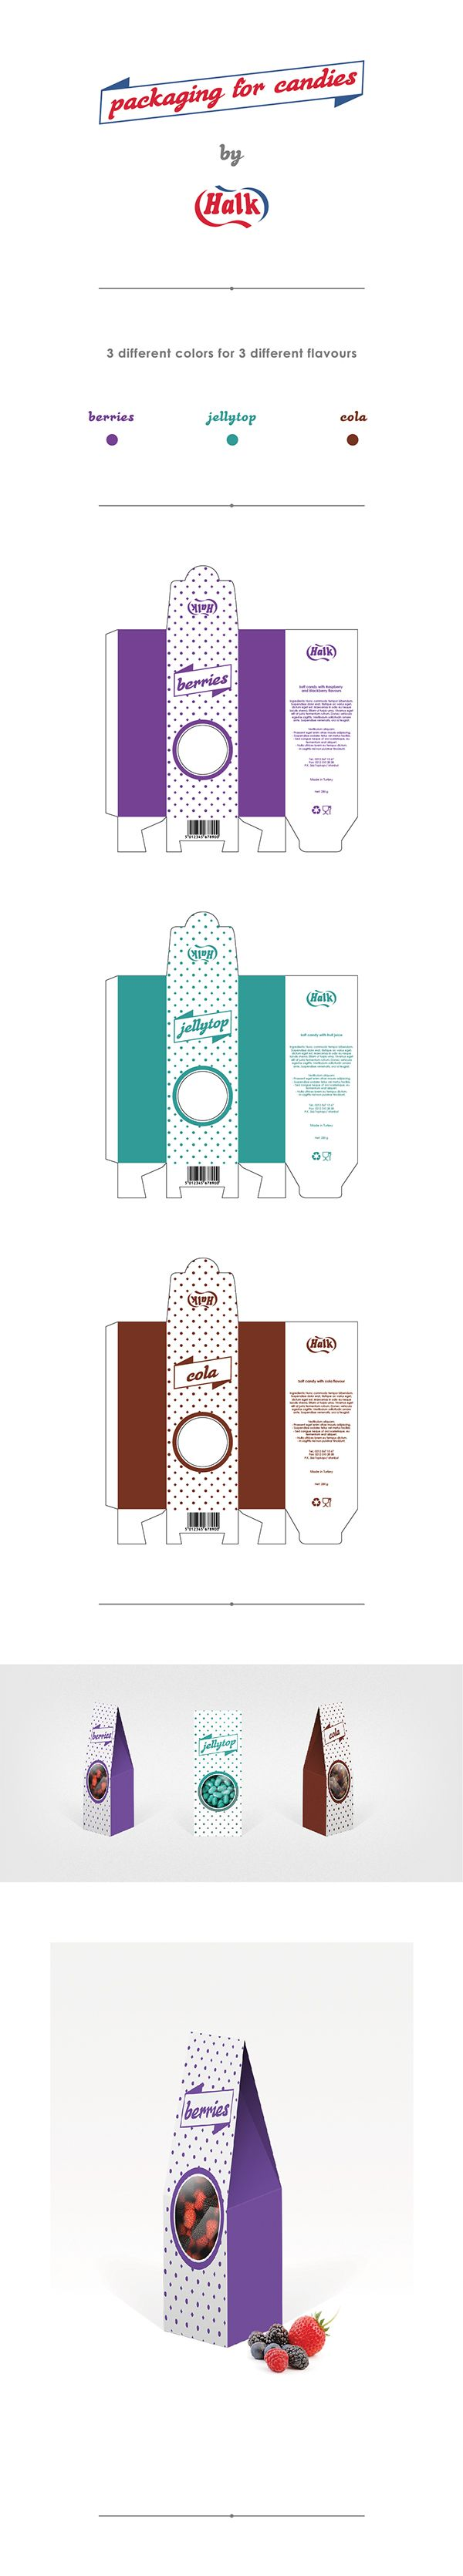 Packaging for candies by Badreddine Biada, via Behance